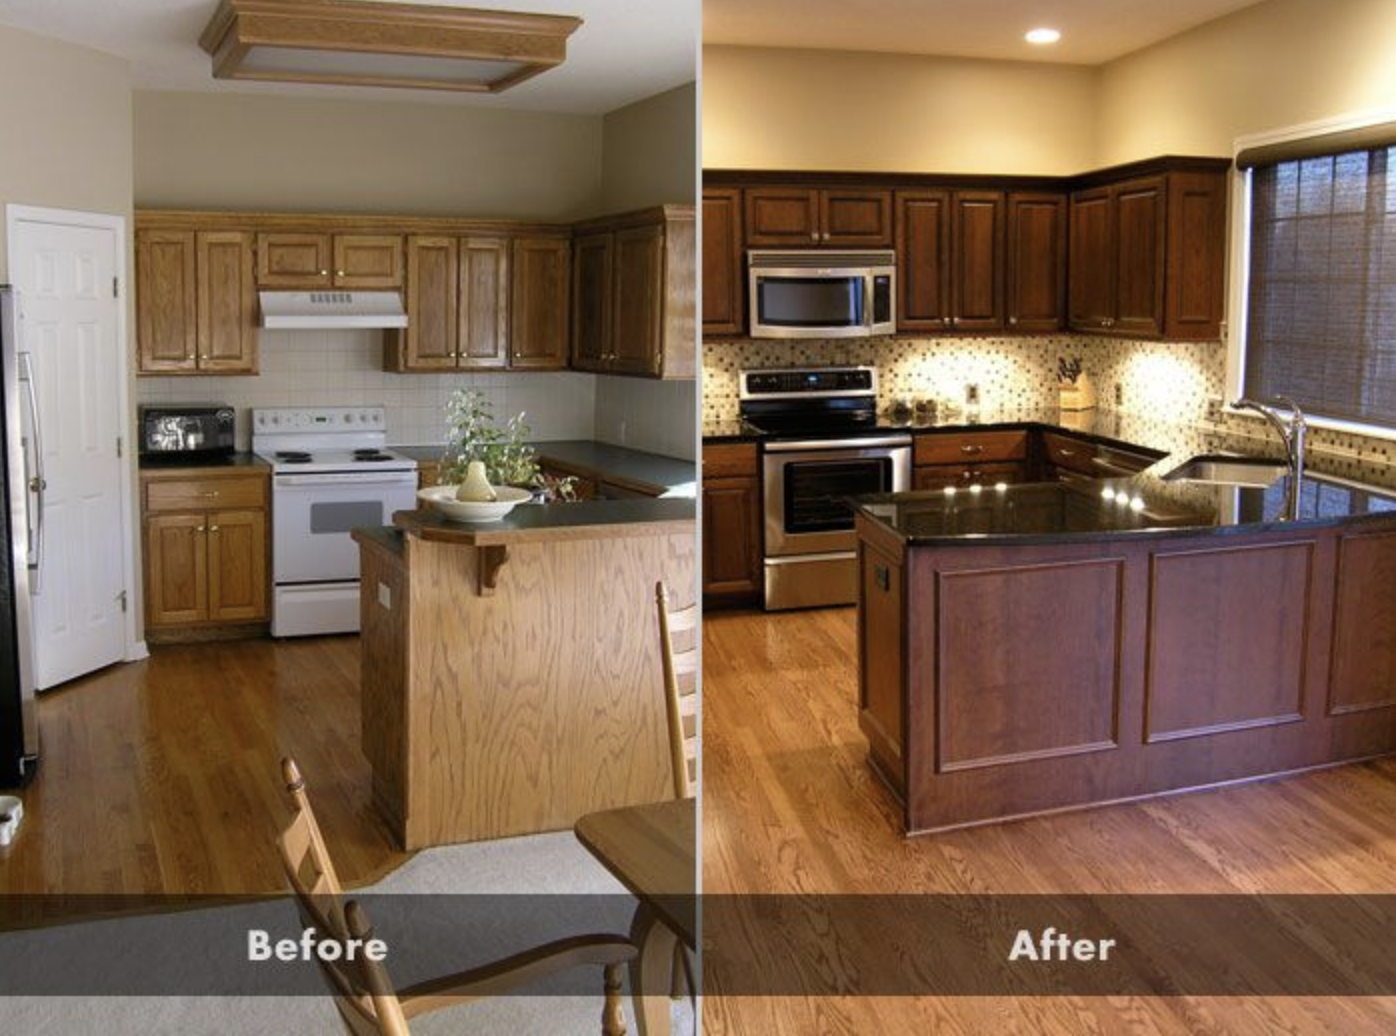 Custom Cabinets To Stain Or Not To Stain Built By Design Built By Design